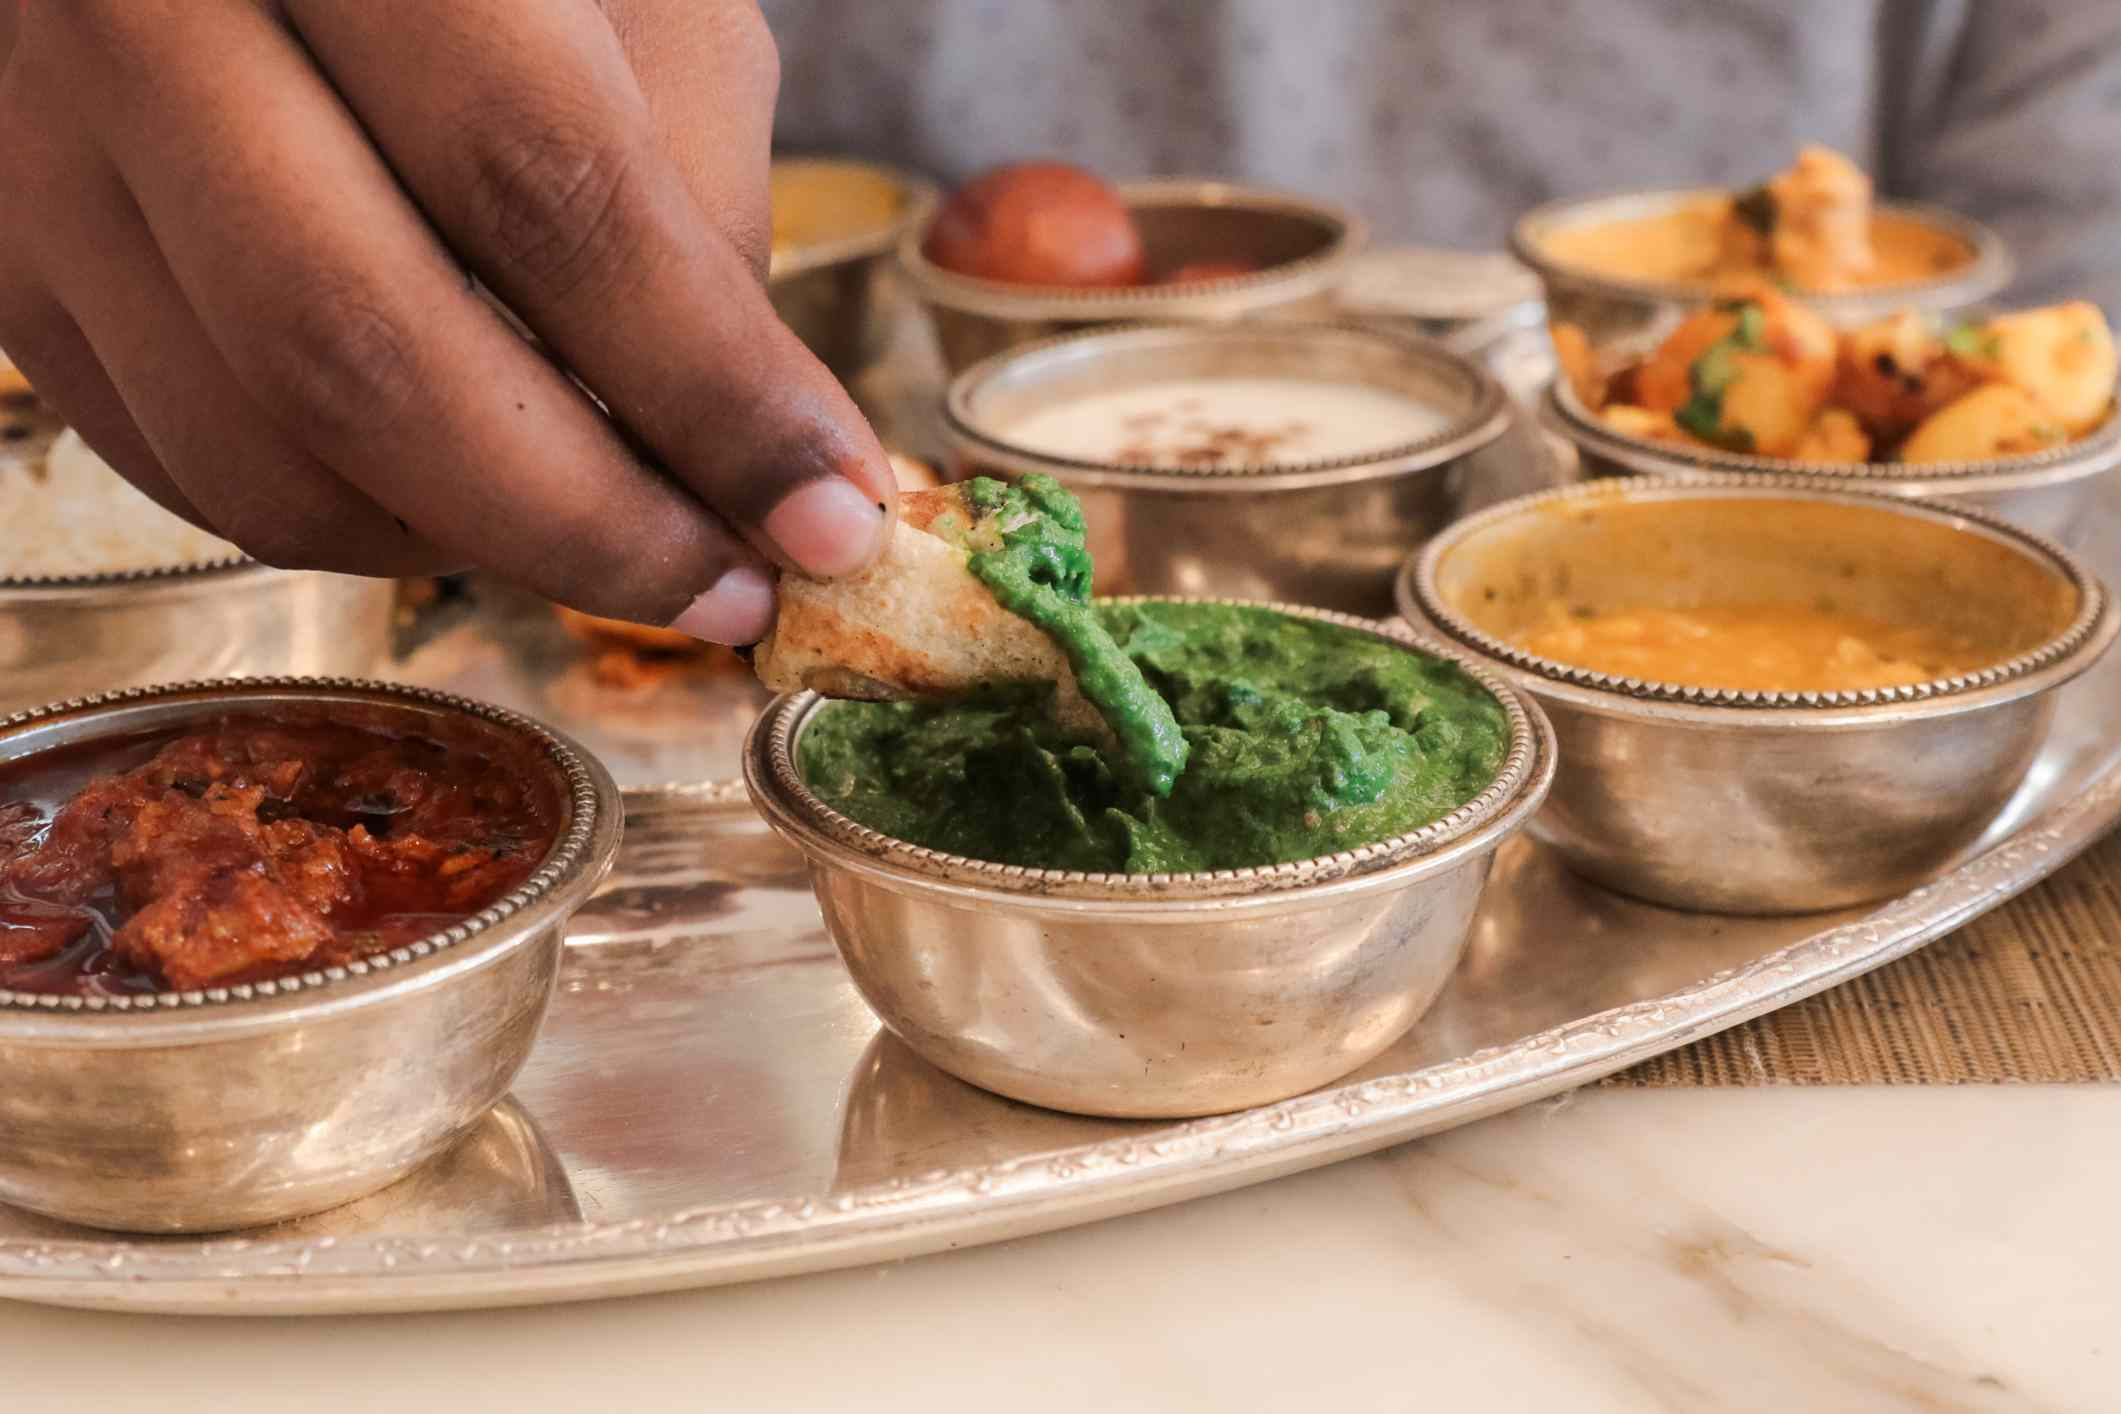 Eating Indian food with hand.